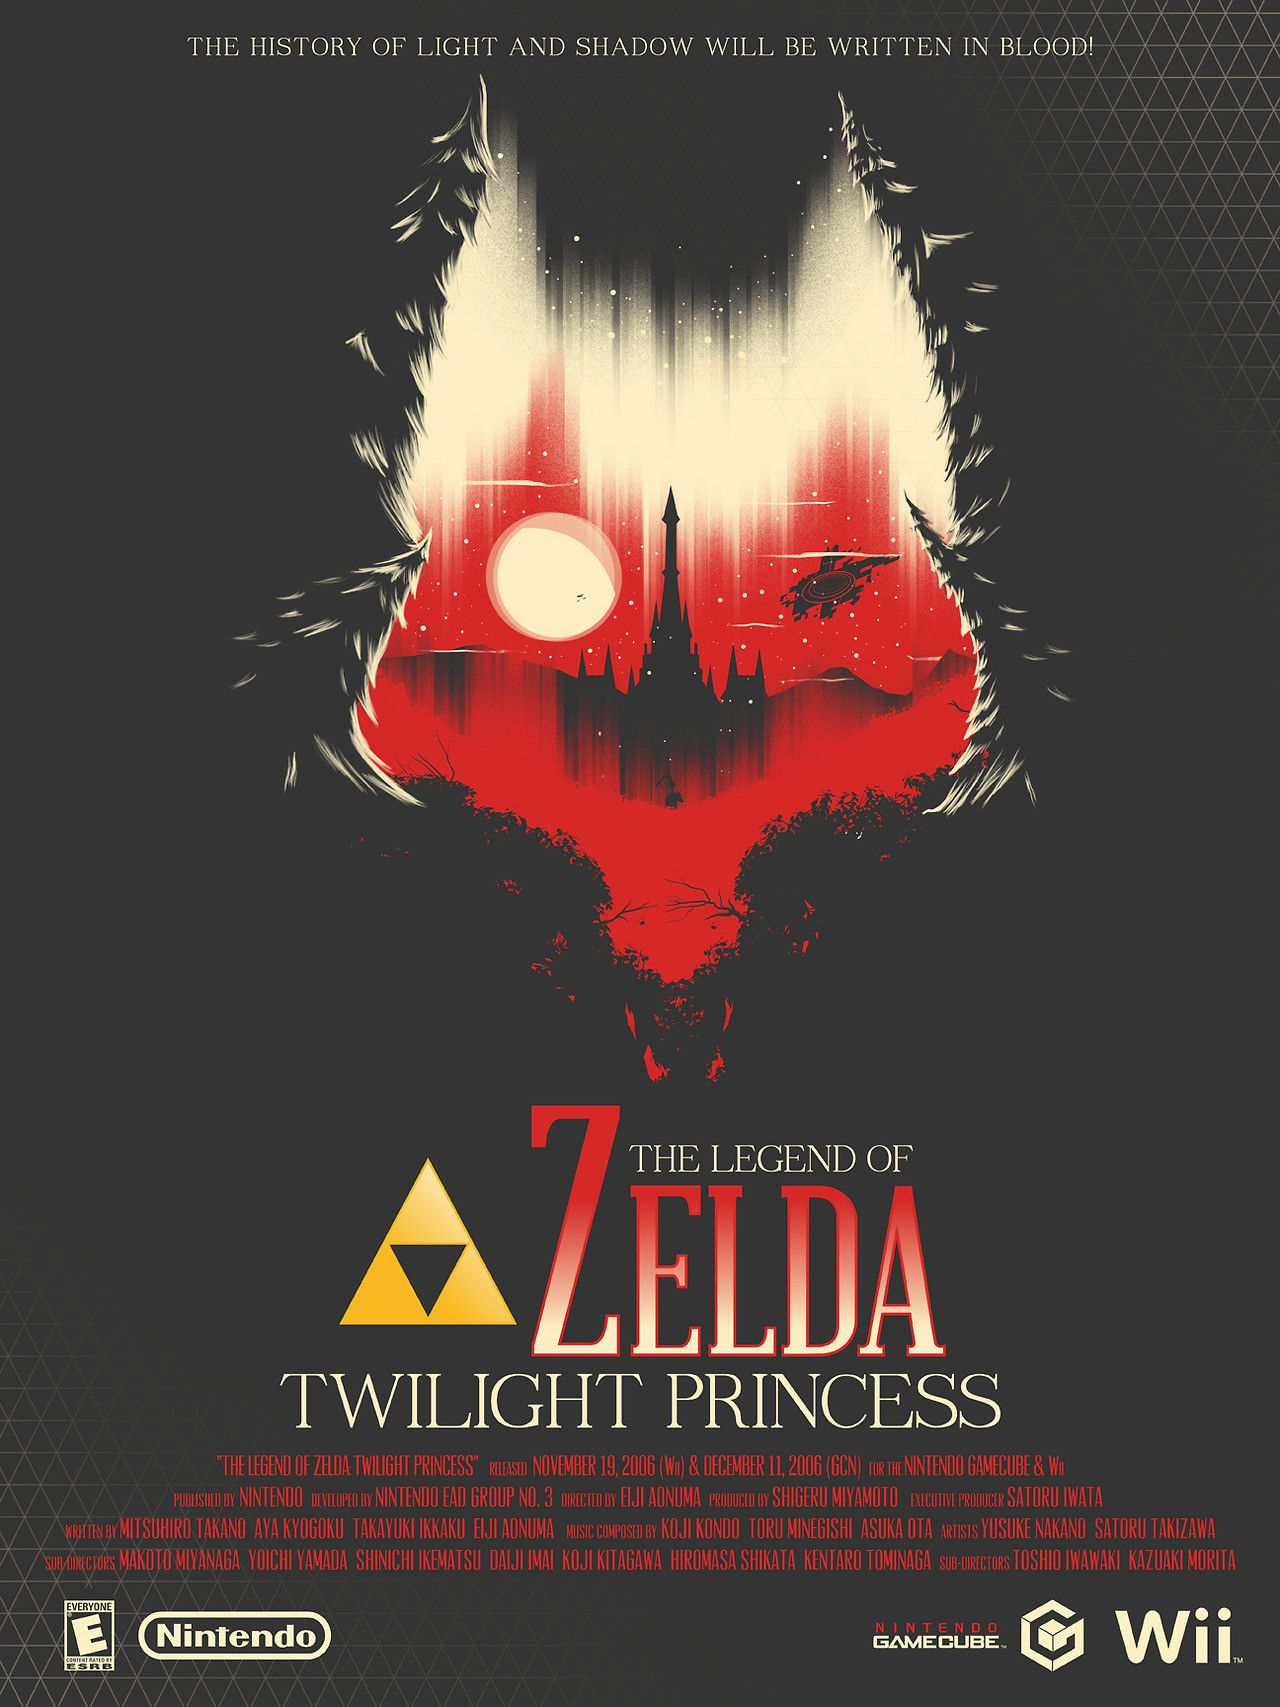 Zelda Quotes Fantastic Legend Of Zelda Posters Createdmarinko Milosevski